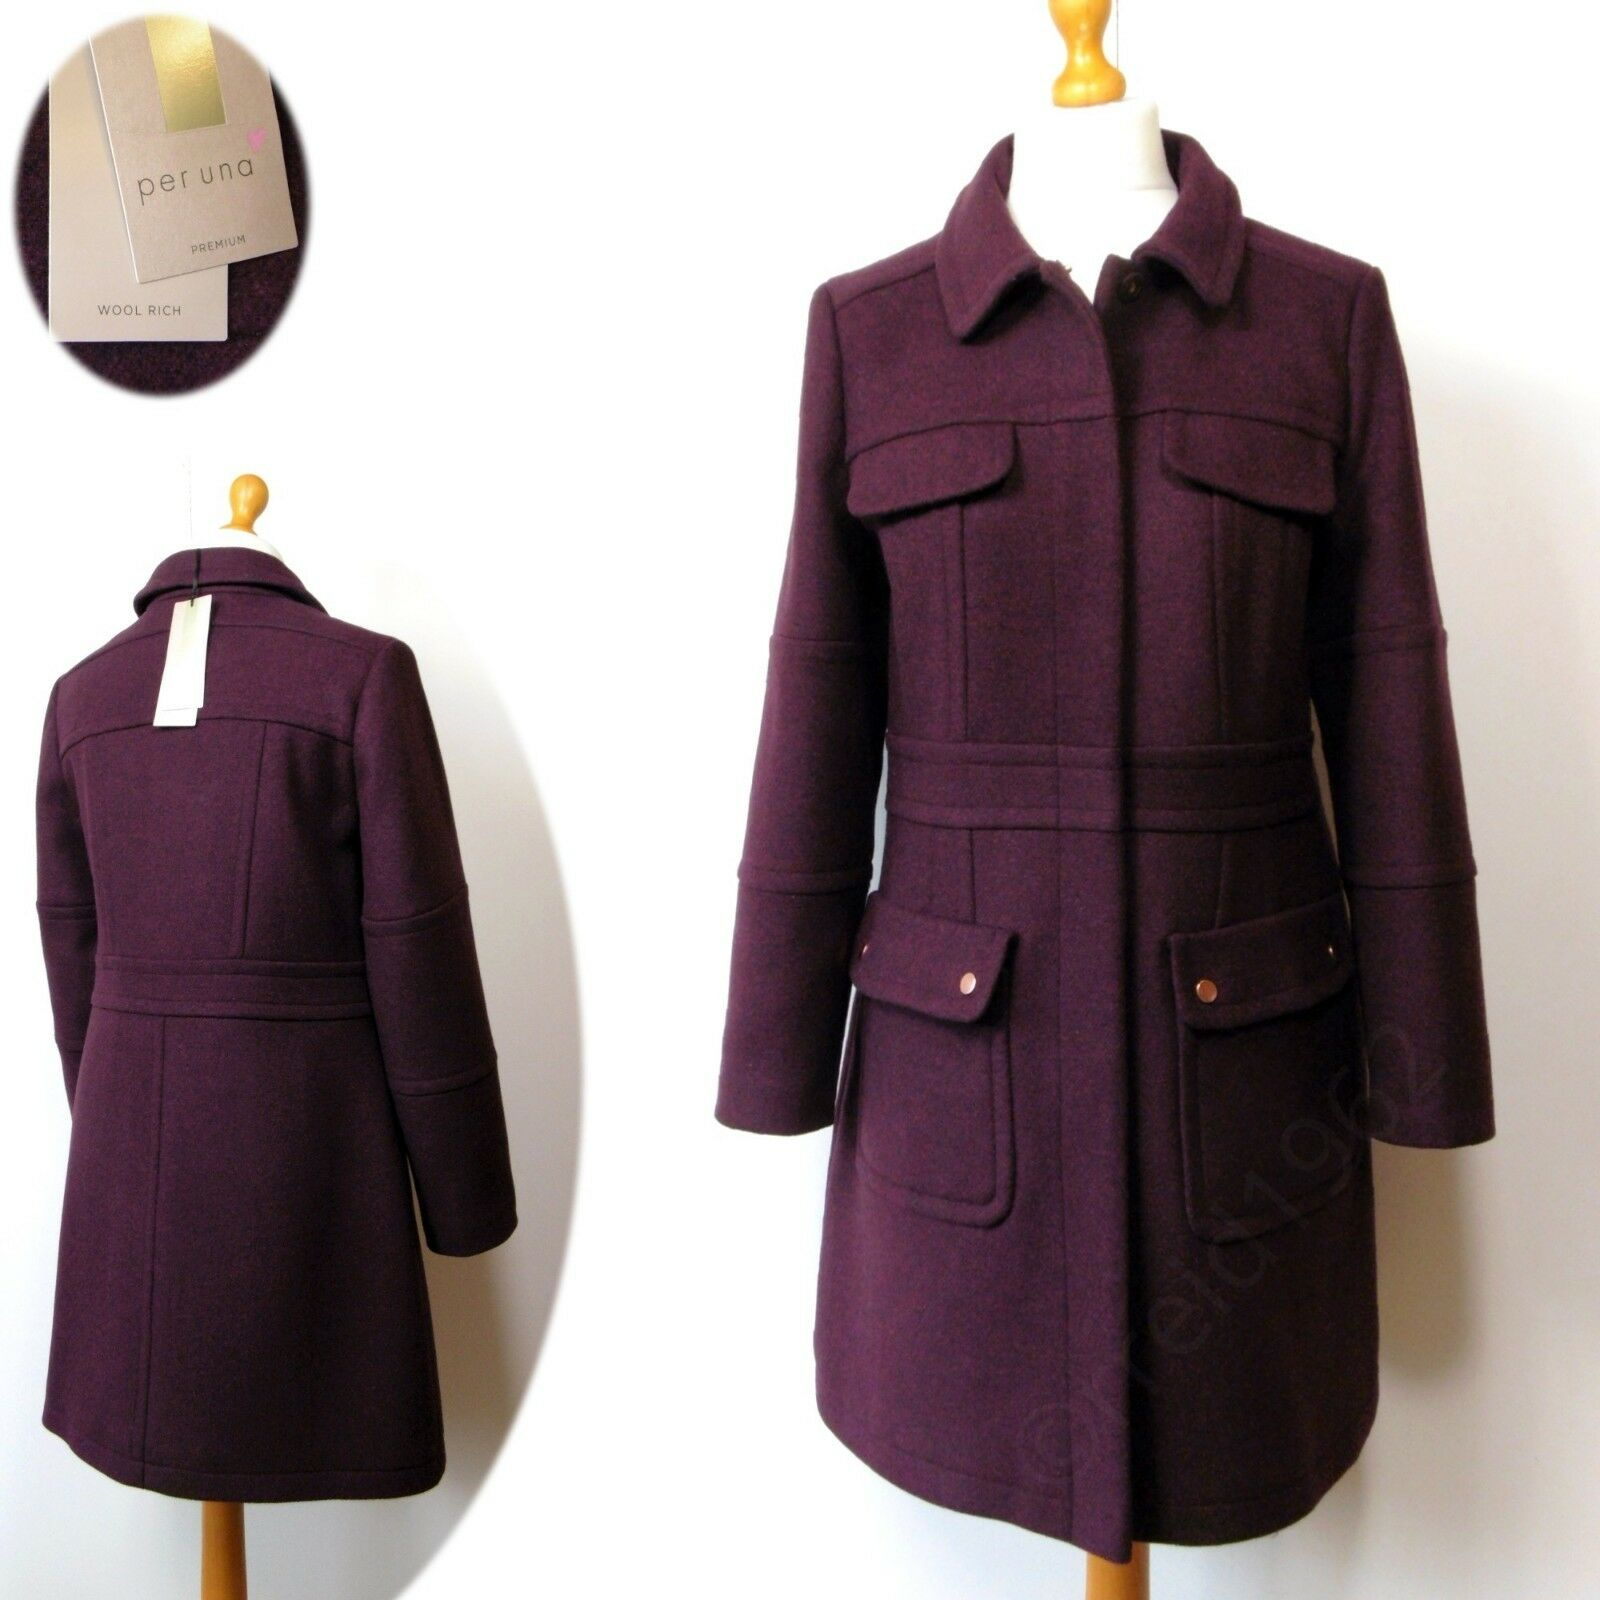 PER UNA Premium WOOL Rich TAILORED Knee Length COAT  Size 18  BURGUNDY